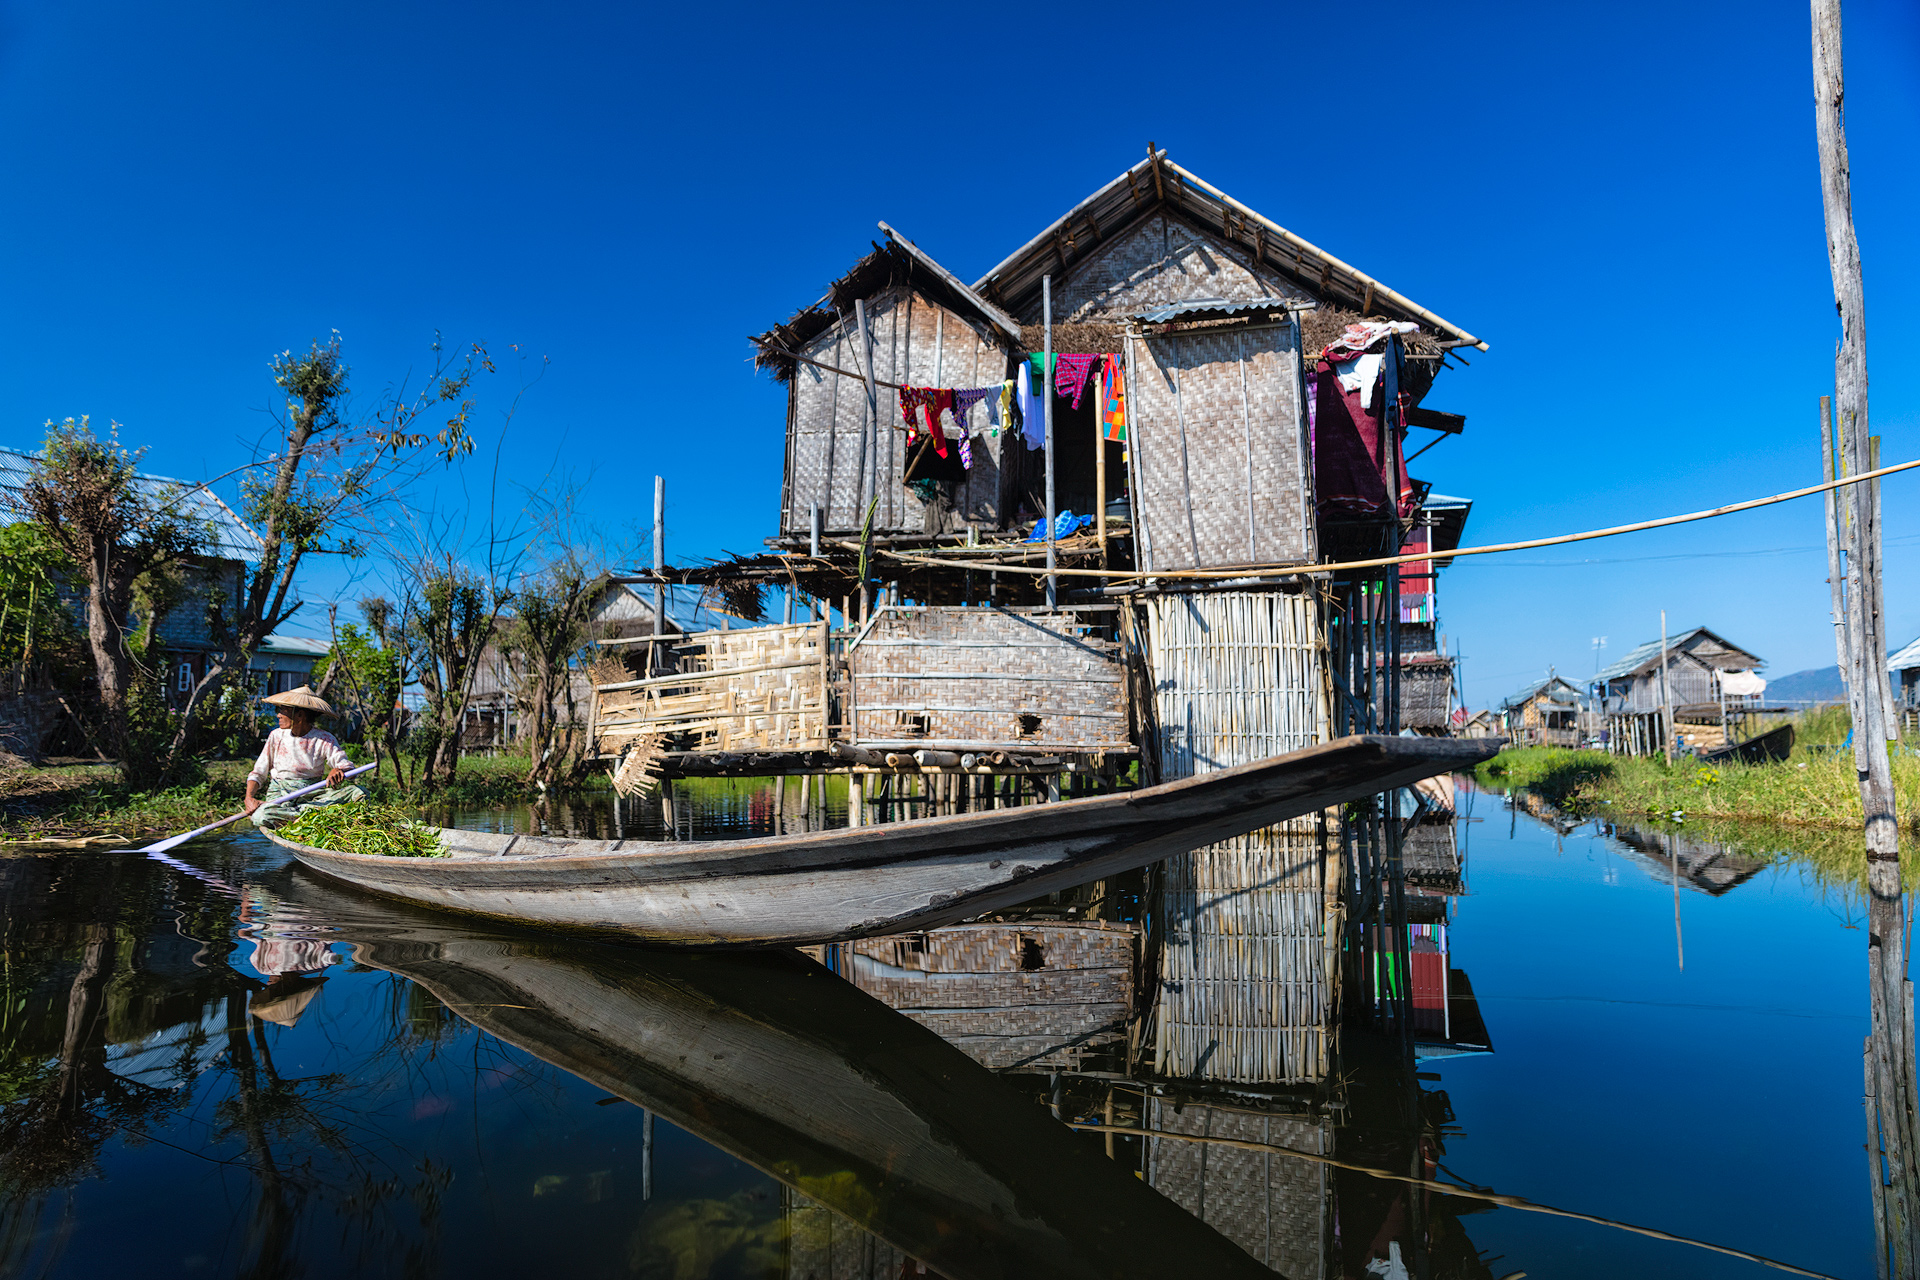 inleboatwoman